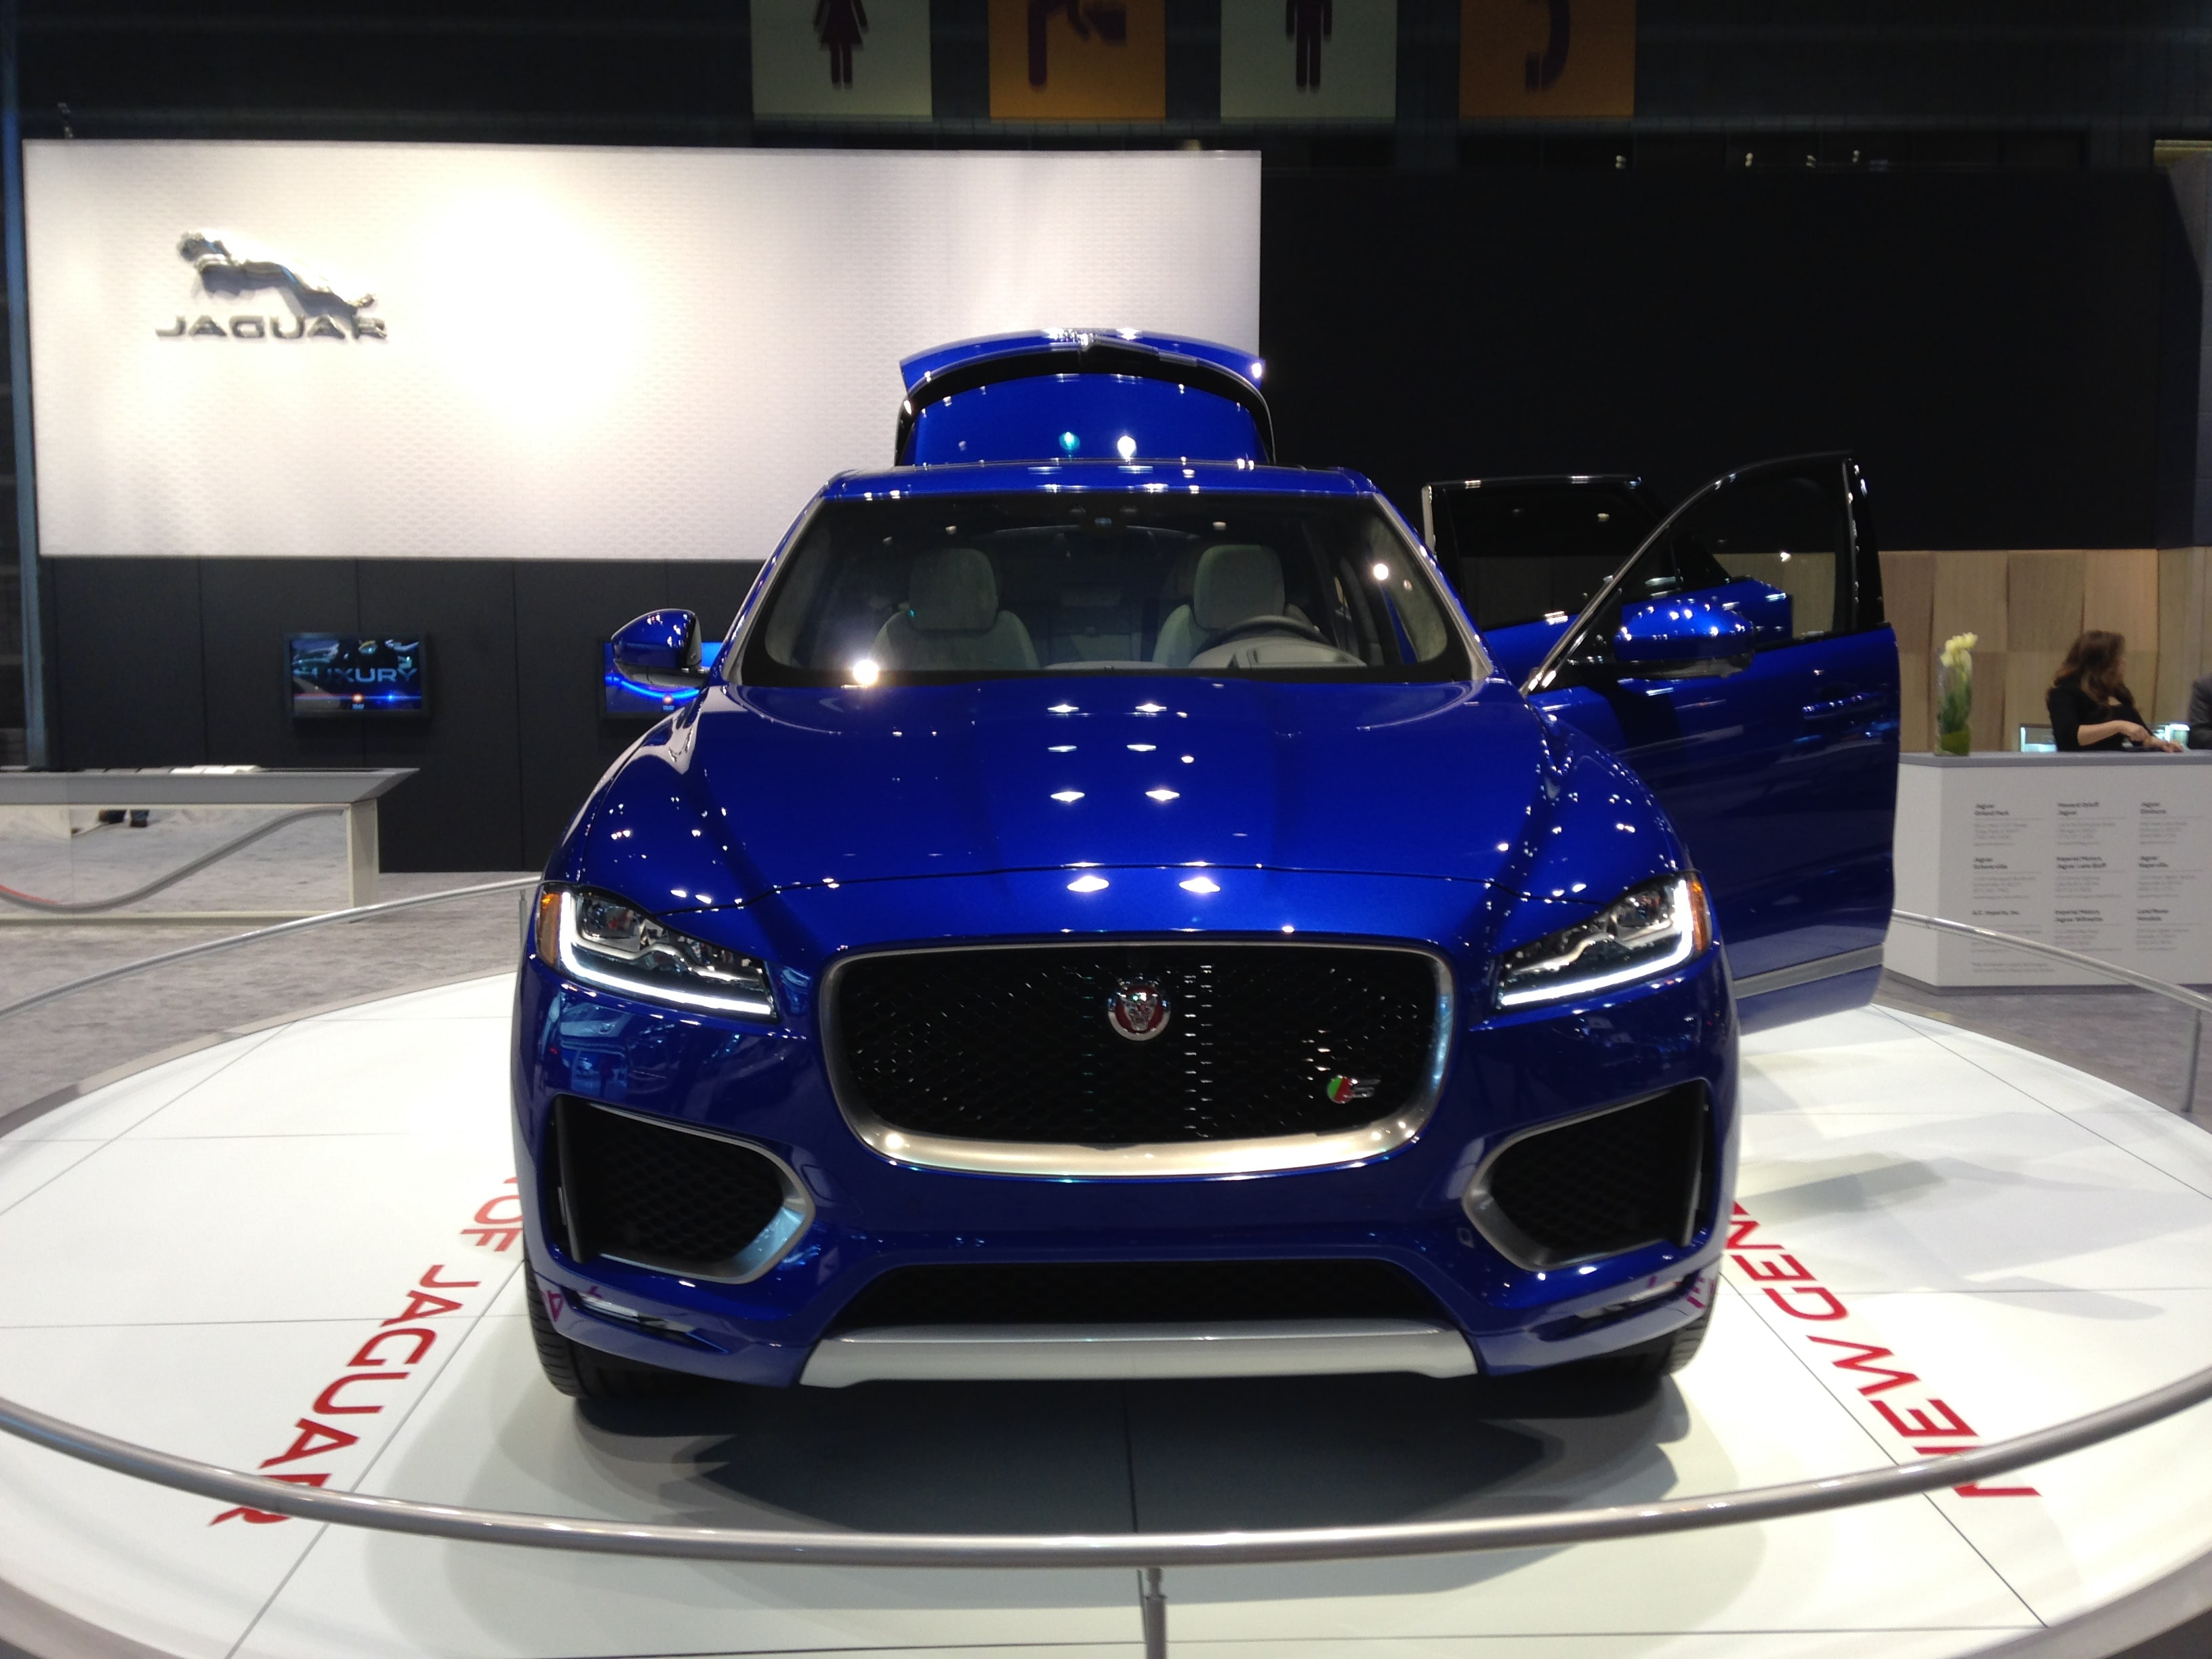 Jaguar Vehicles at the Chicago Auto Show